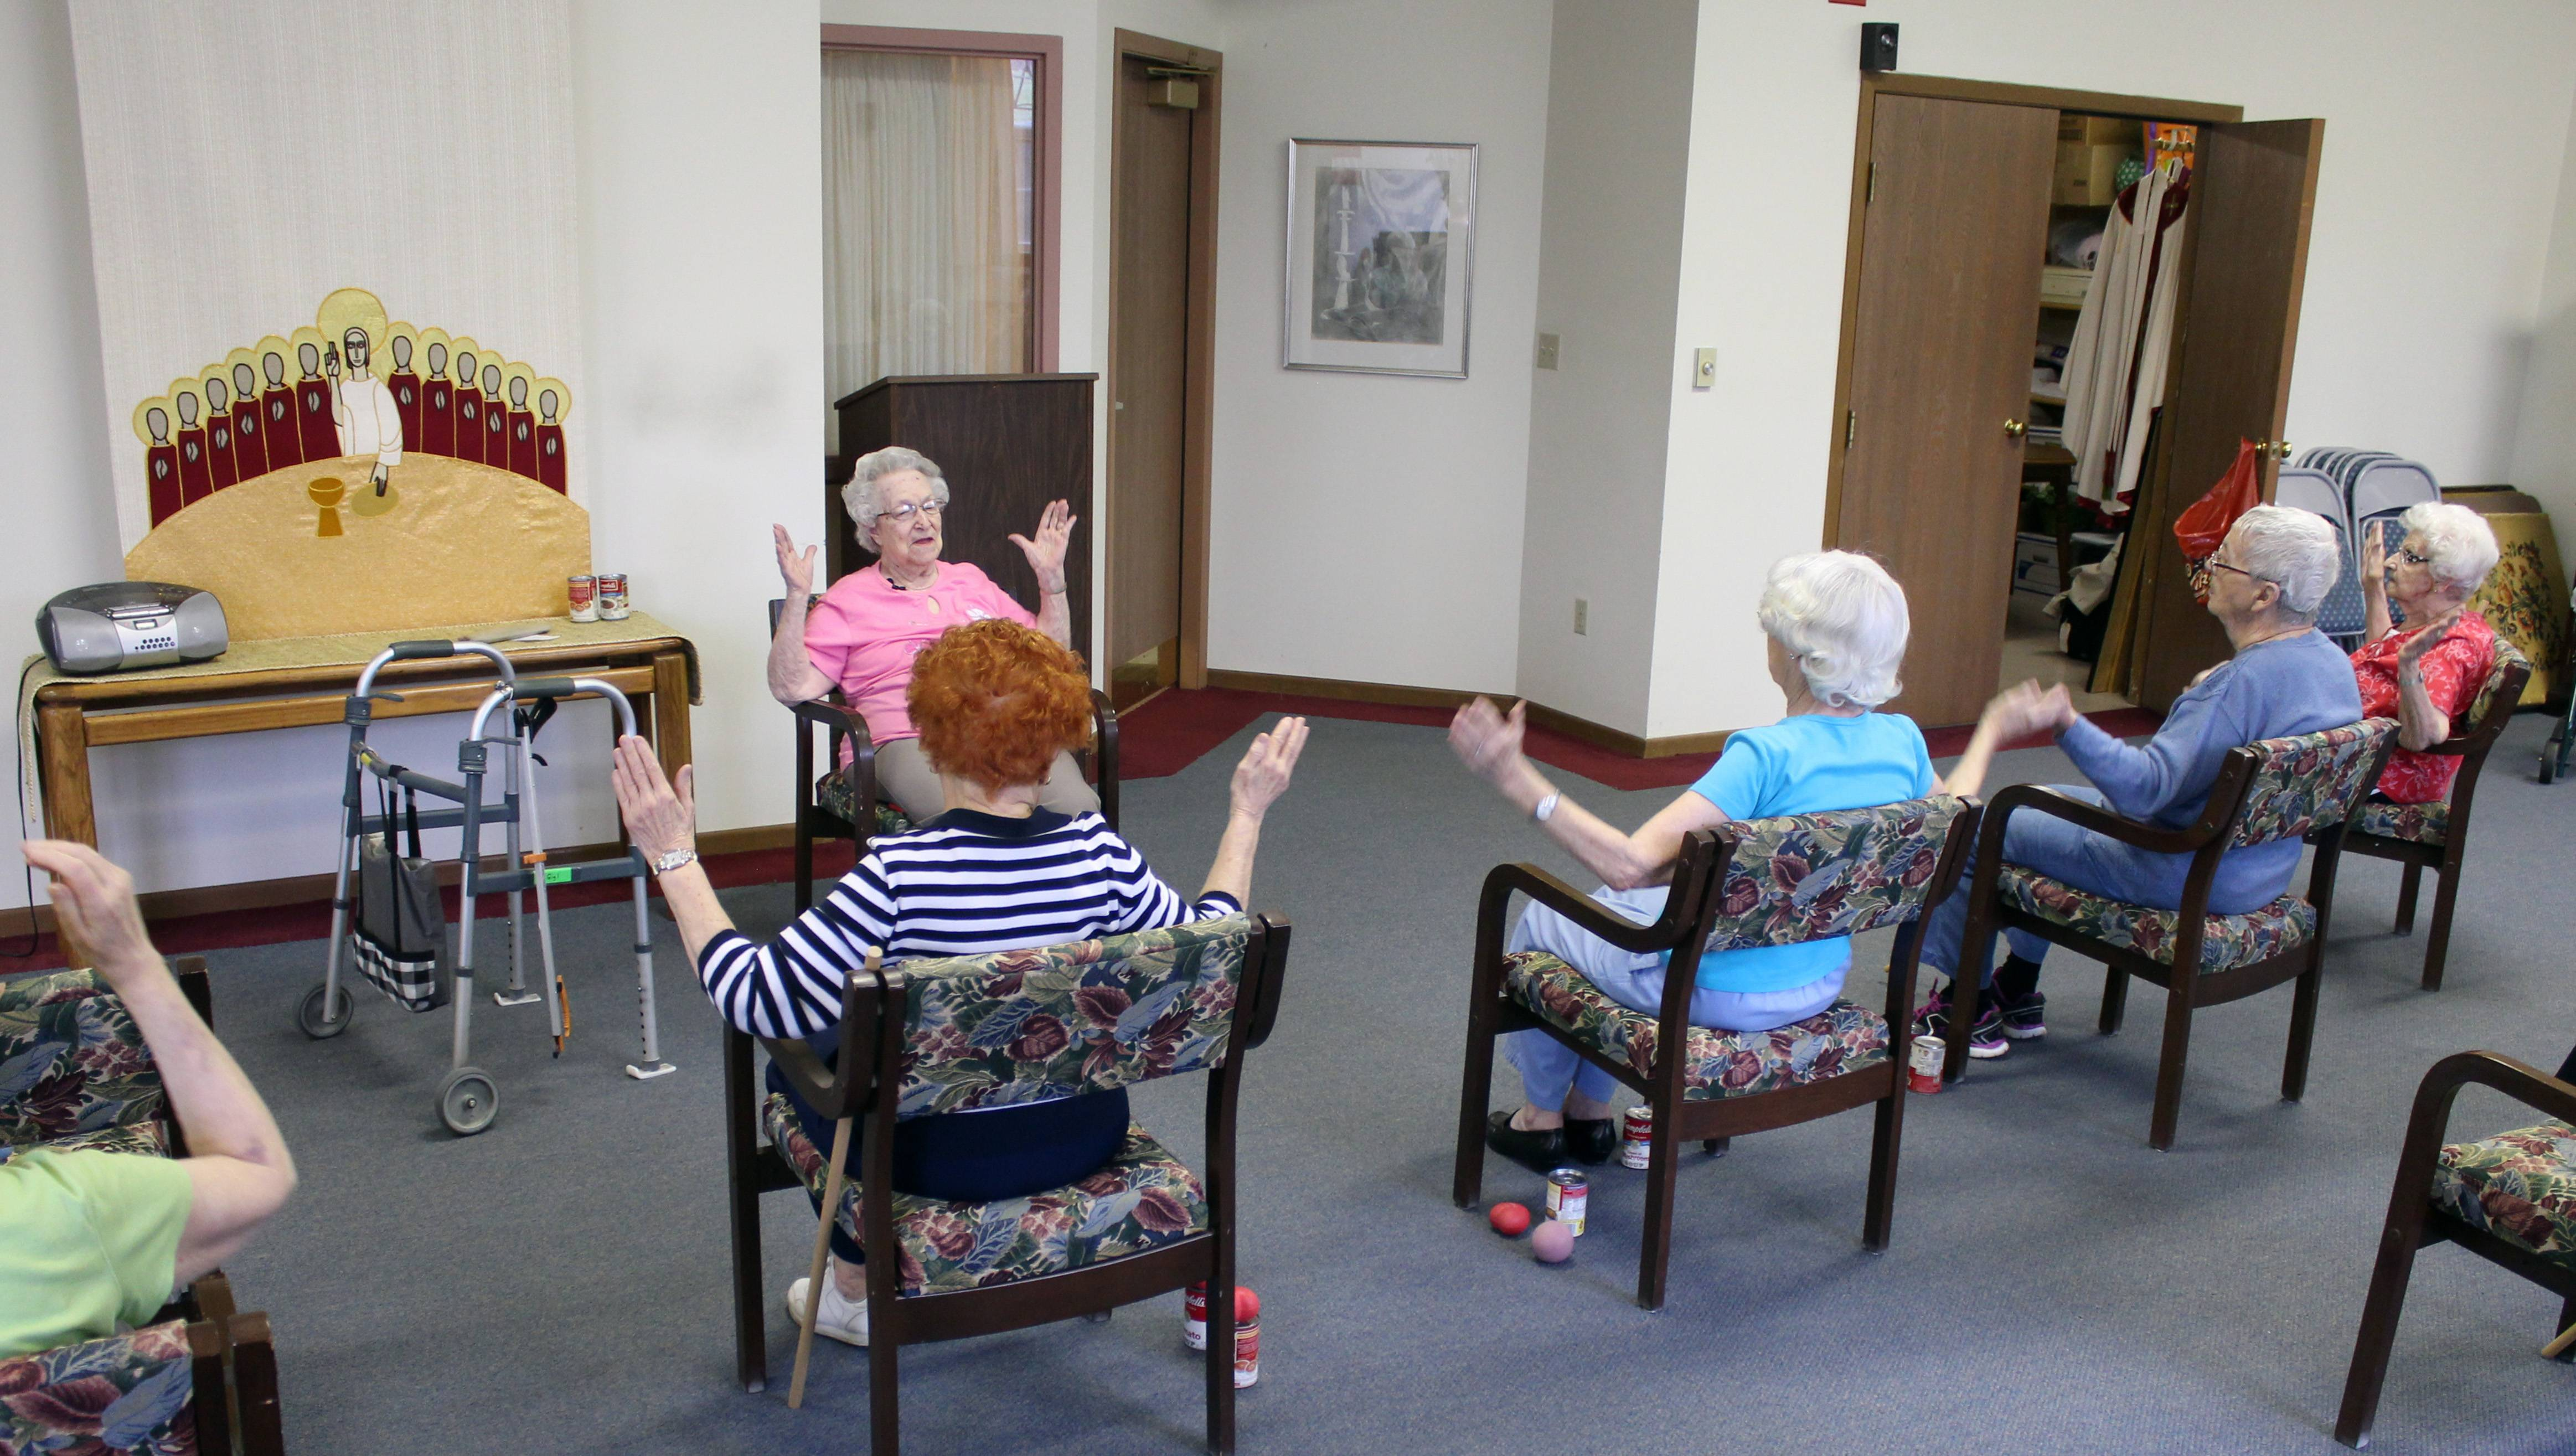 Hildegard Gigl leads a twice weekly exercise class at Hawthorne Terrace independent retirement center in Wauwatosa, Wis. Gigl, who turns 99 in June, is the oldest one in the class.